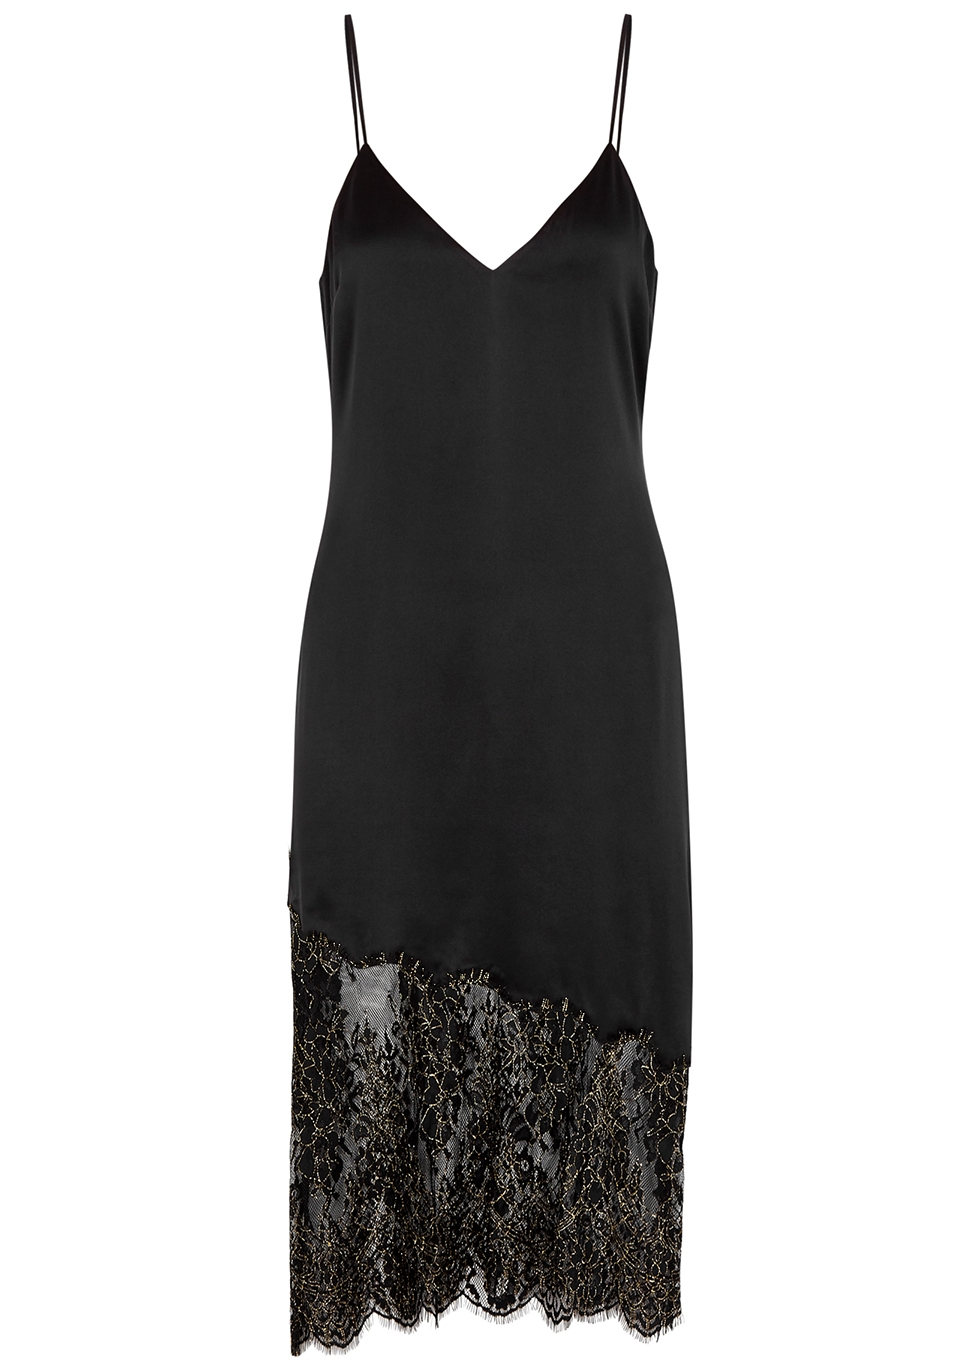 The Selena black lace-trimmed midi dress